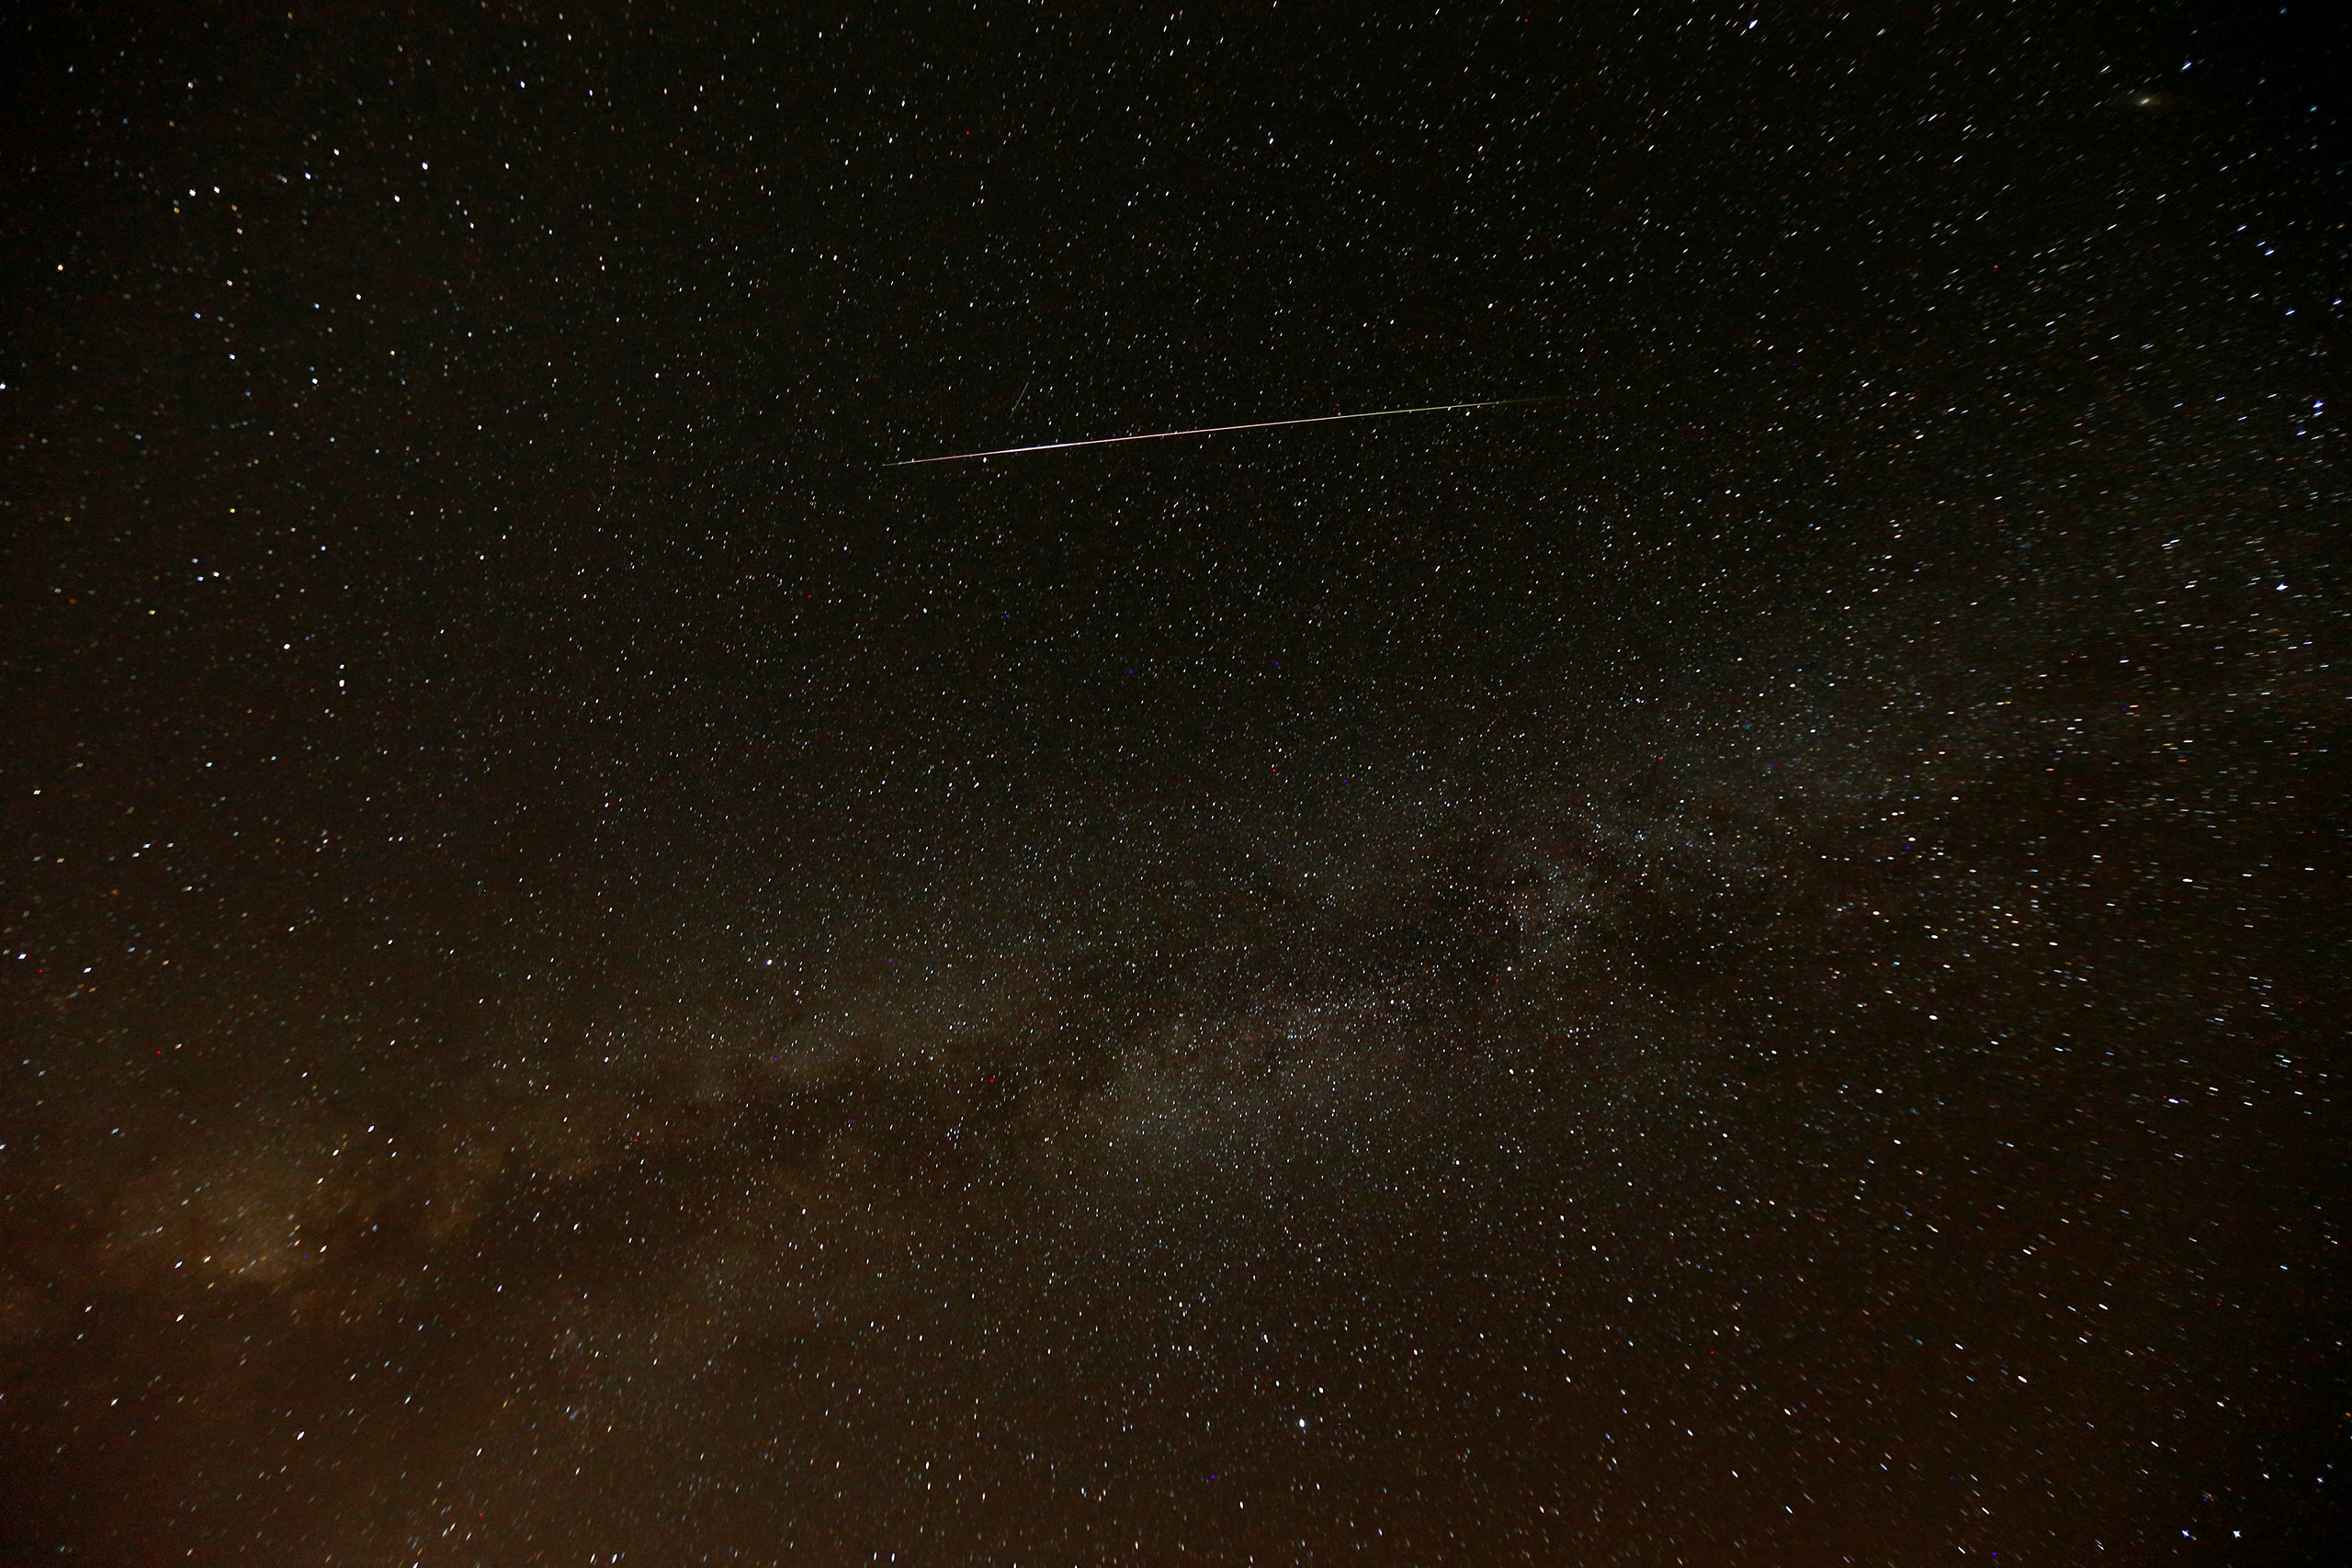 A meteor streaks across the sky in the early morning during the Perseid meteor shower in Ramon Crater near the town of Mitzpe Ramon, southern Israel, Aug. 12, 2016.